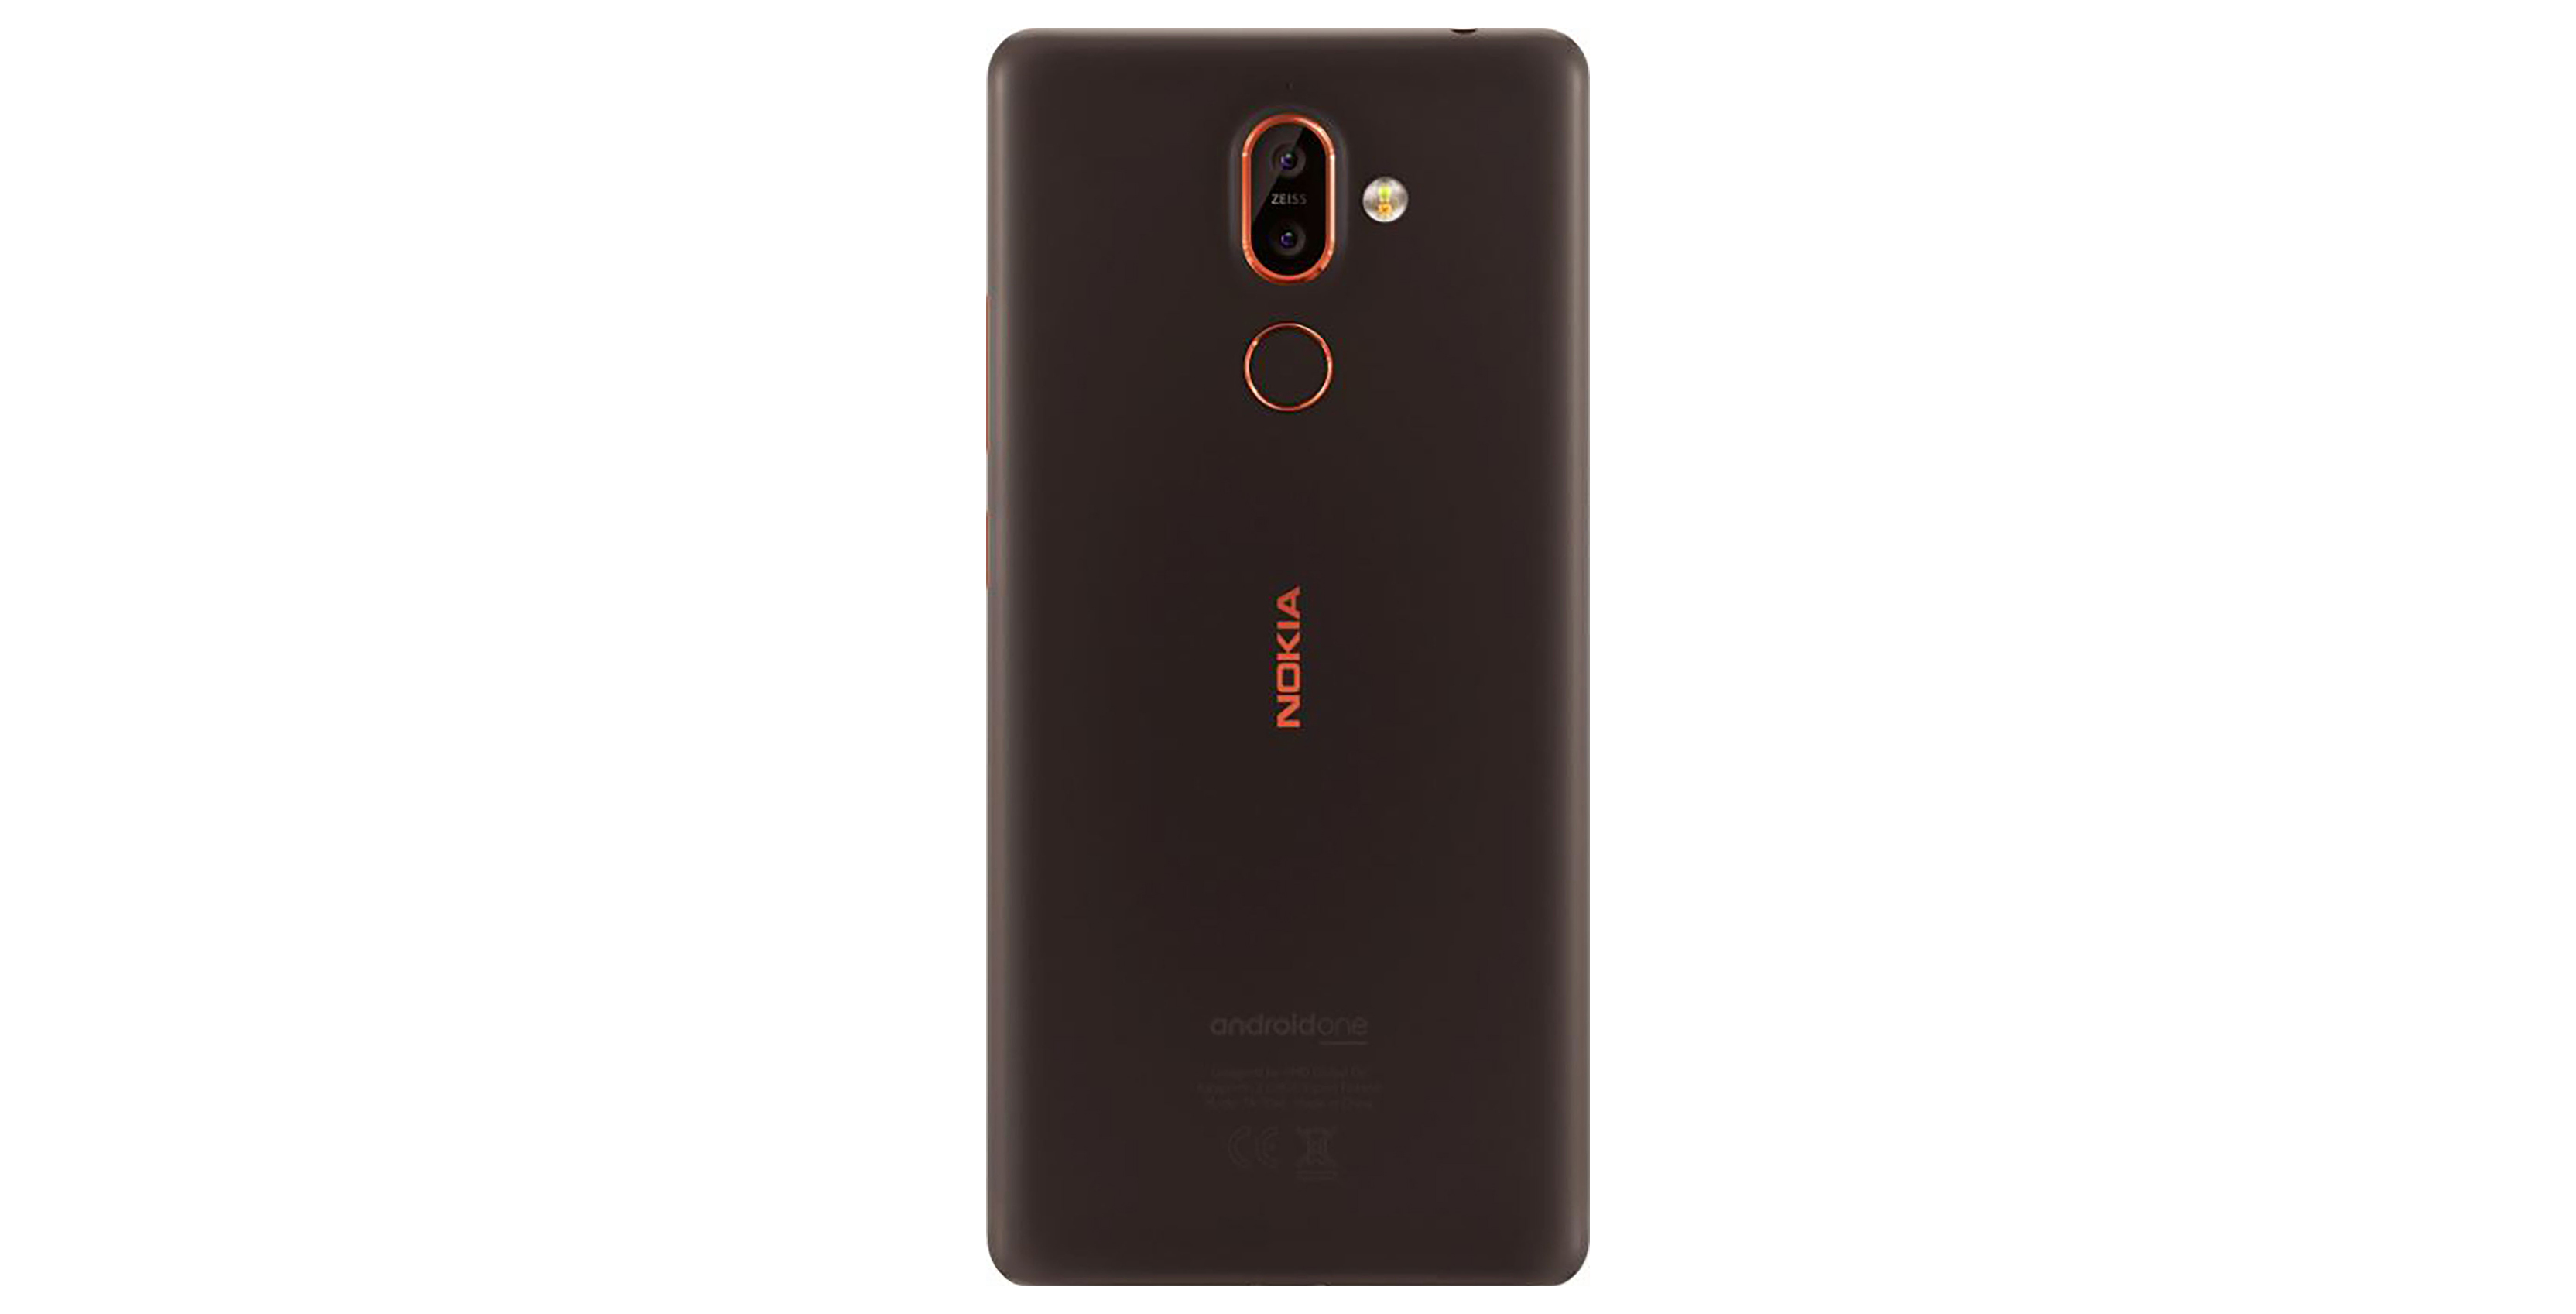 Nokia 7 Plus, Nokia 1 Android Phones Revealed In Leaked Renders